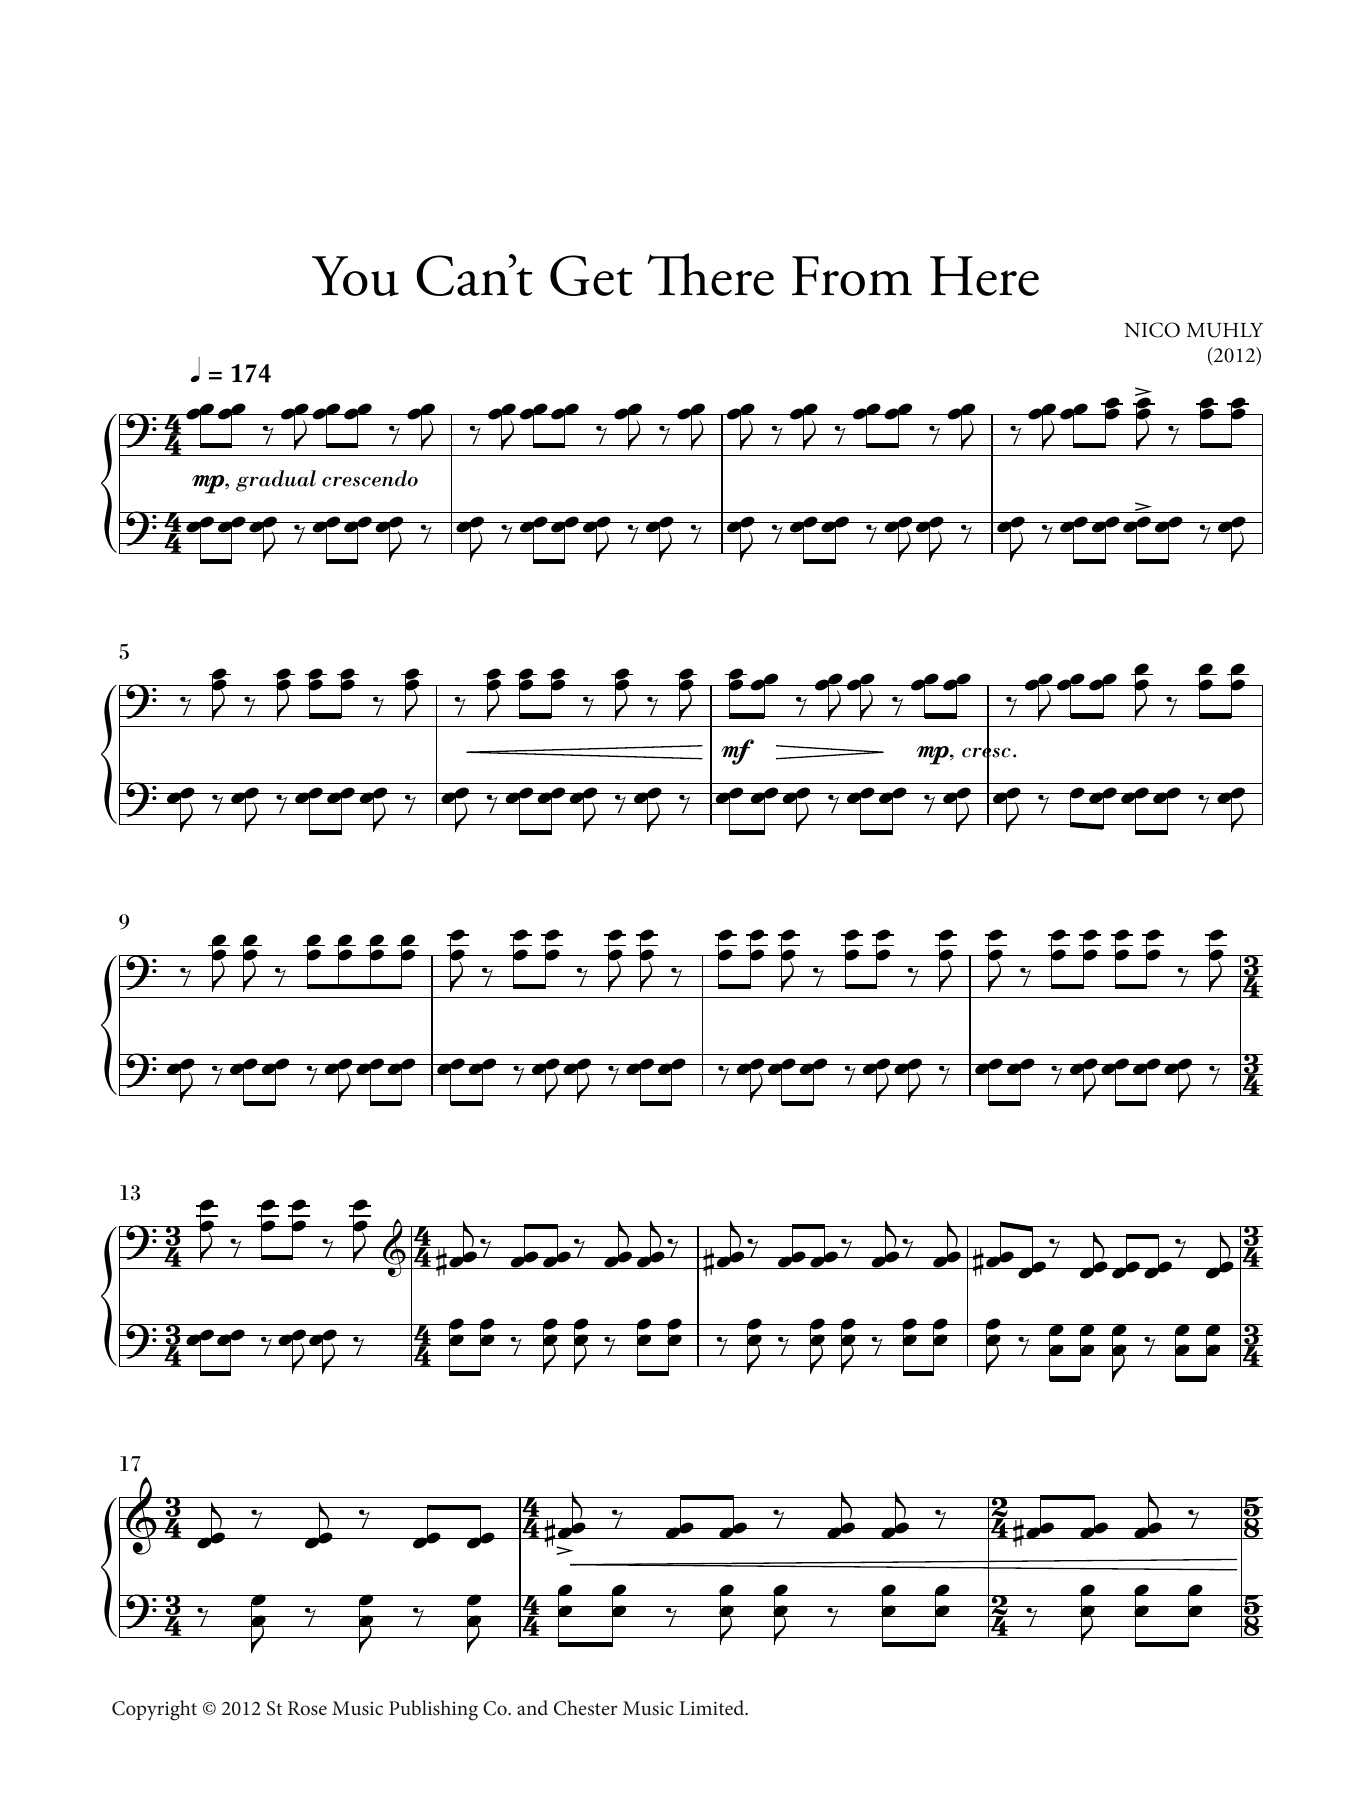 You Can't Get There From Here Sheet Music